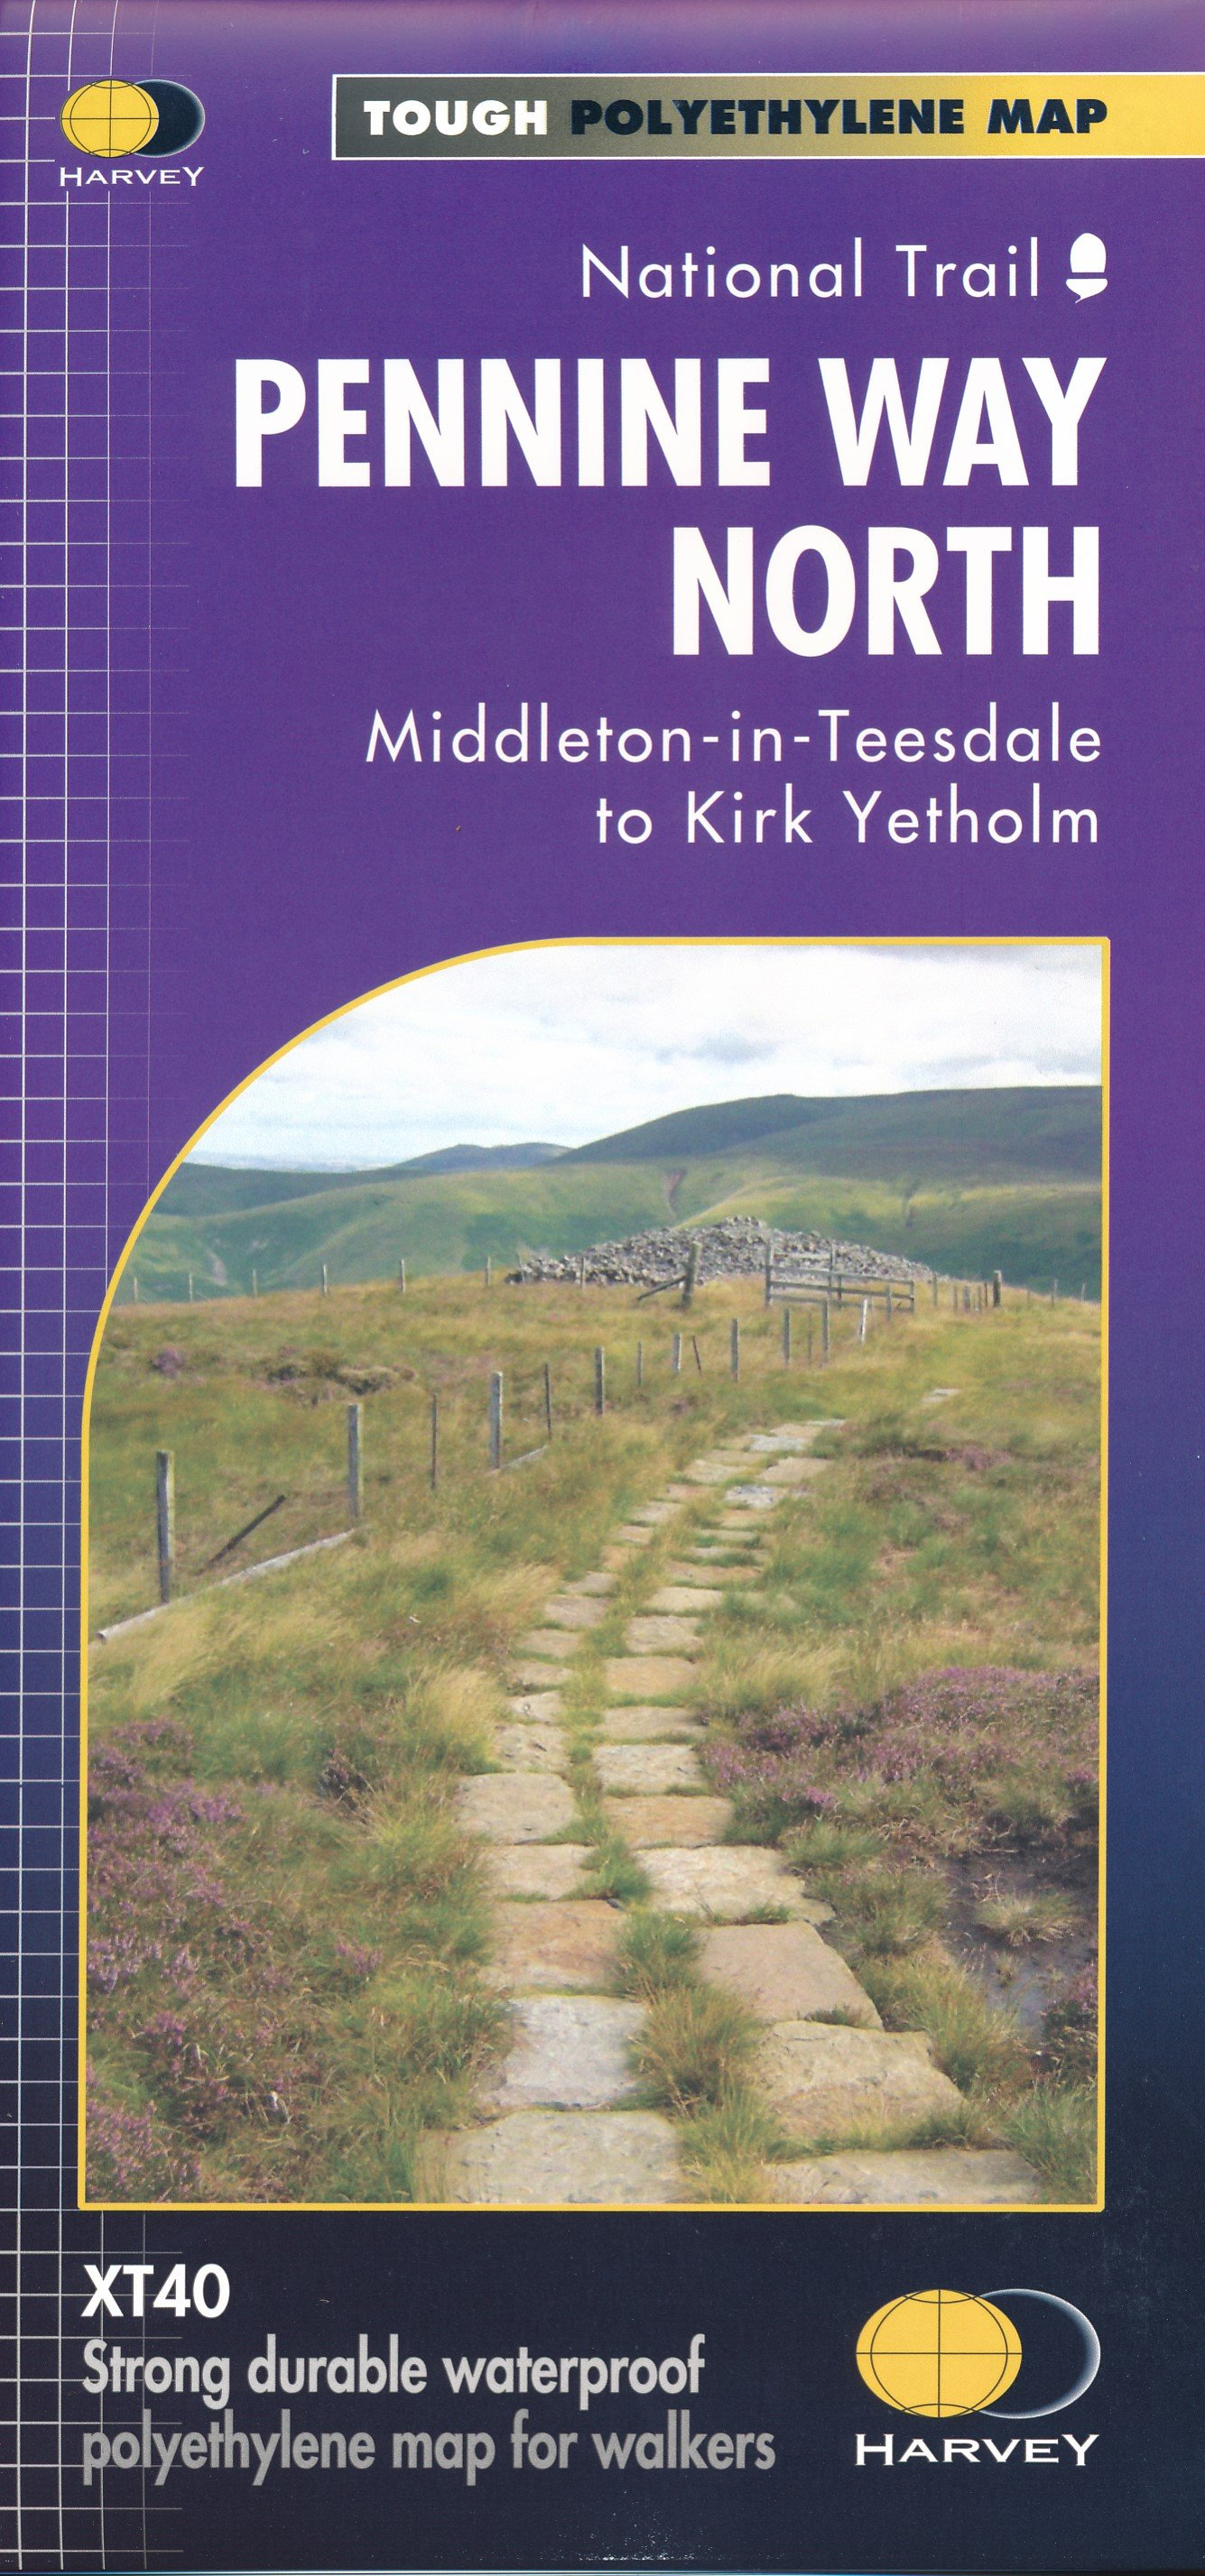 Pennine Way North | wandelkaart 1:40.000 9781851376155  Harvey Maps   Meerdaagse wandelroutes, Wandelkaarten Northumberland, Yorkshire Dales & Moors, Peak District, Isle of Man